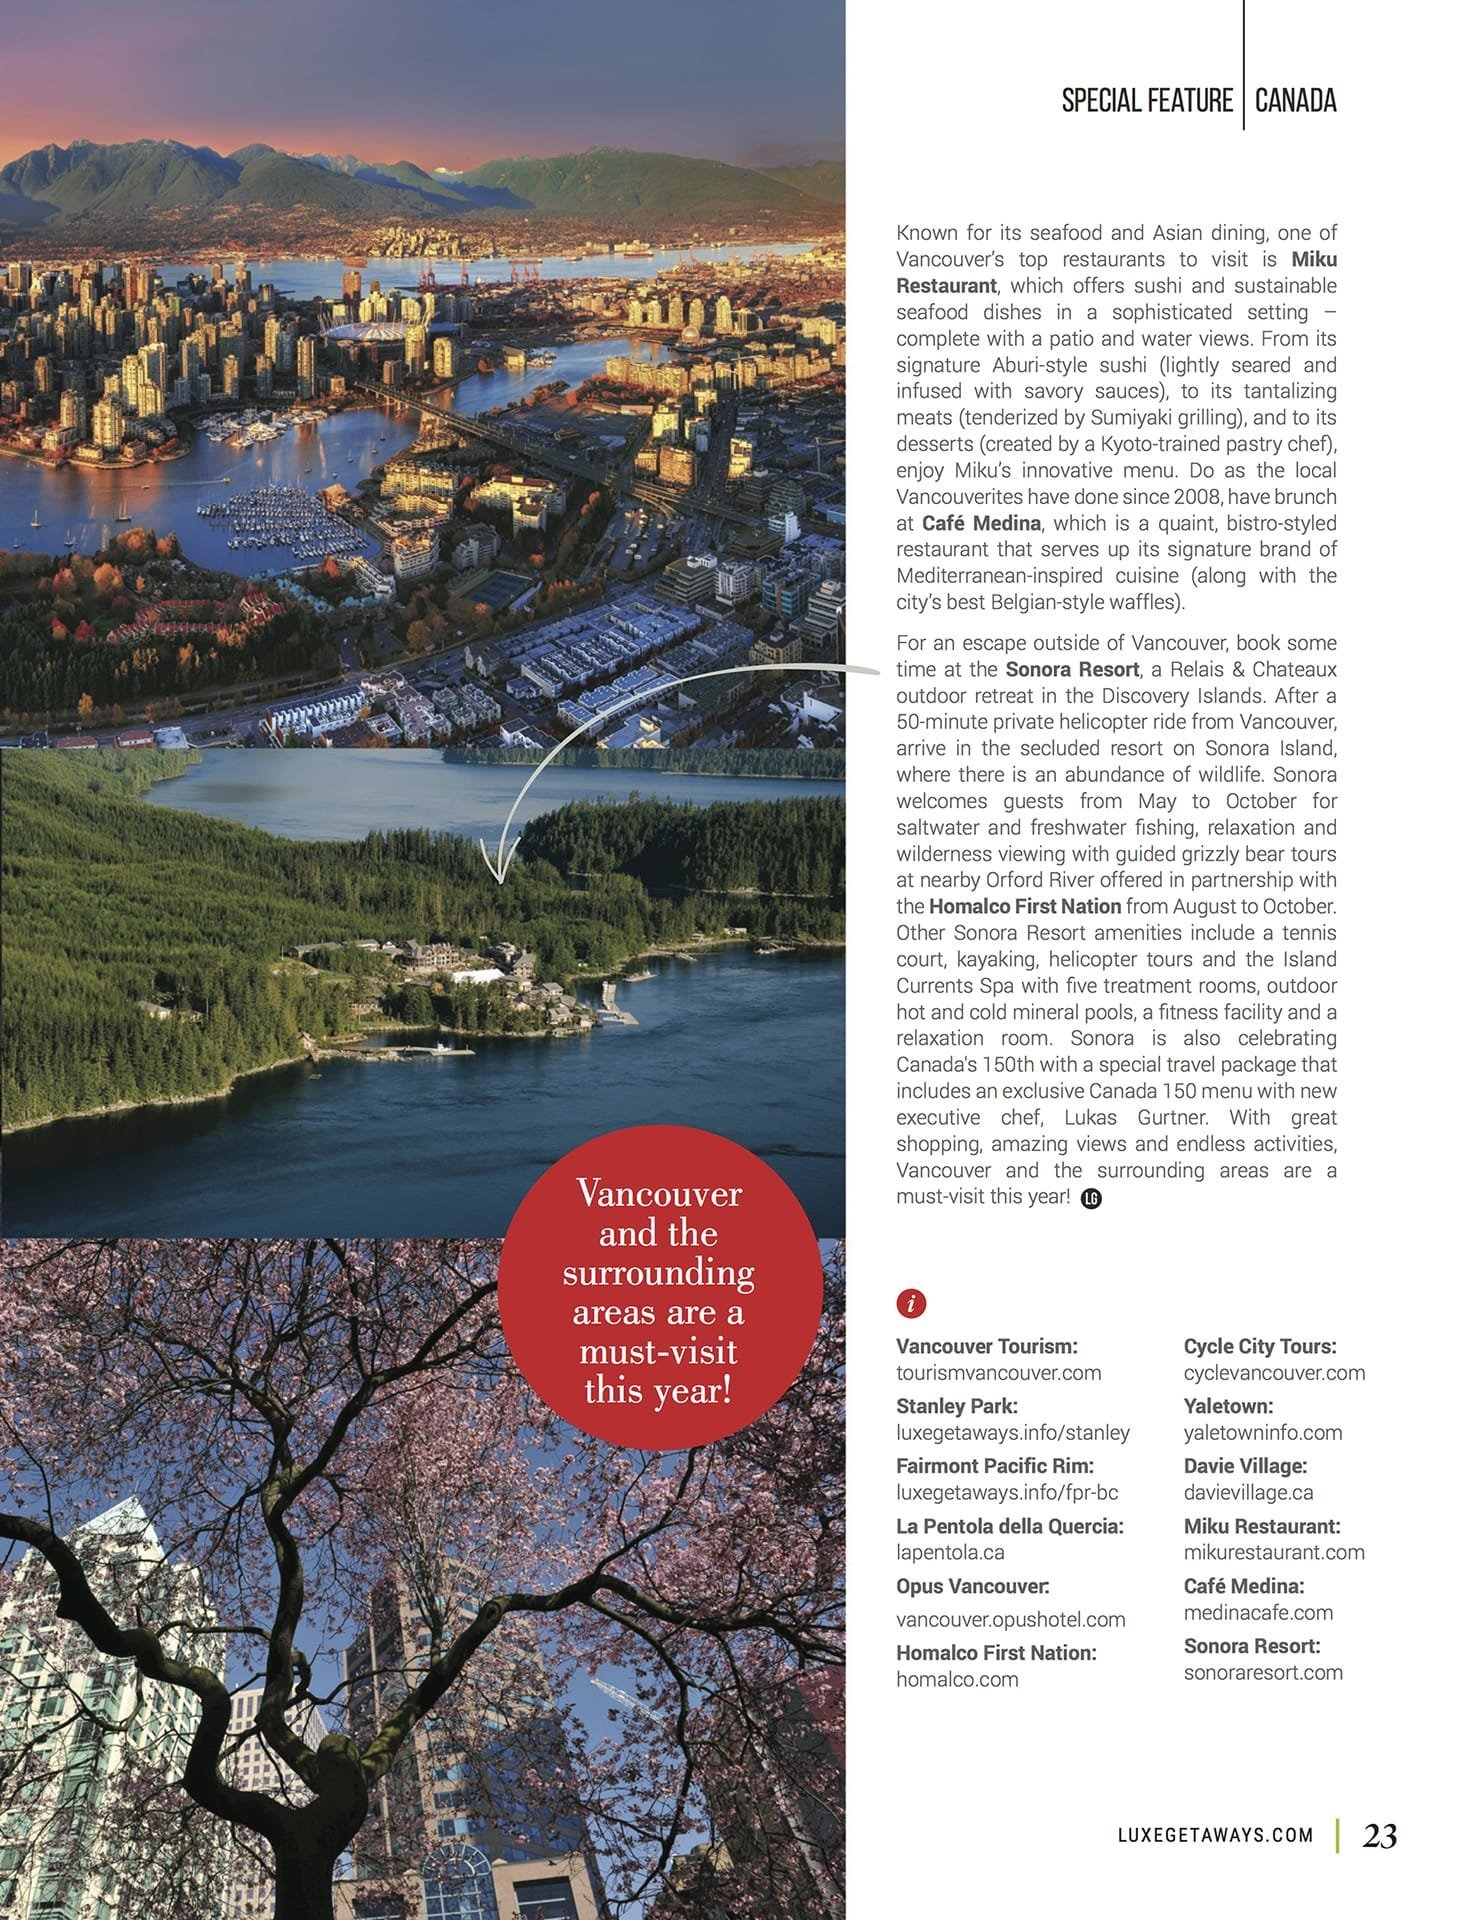 LuxeGetaways - Luxury Travel - Luxury Travel Magazine - Celebrate Canada - Canada Anniversary - Canada Travel Guide - Toronto Guide, Vancouver Guide, Montreal Guide